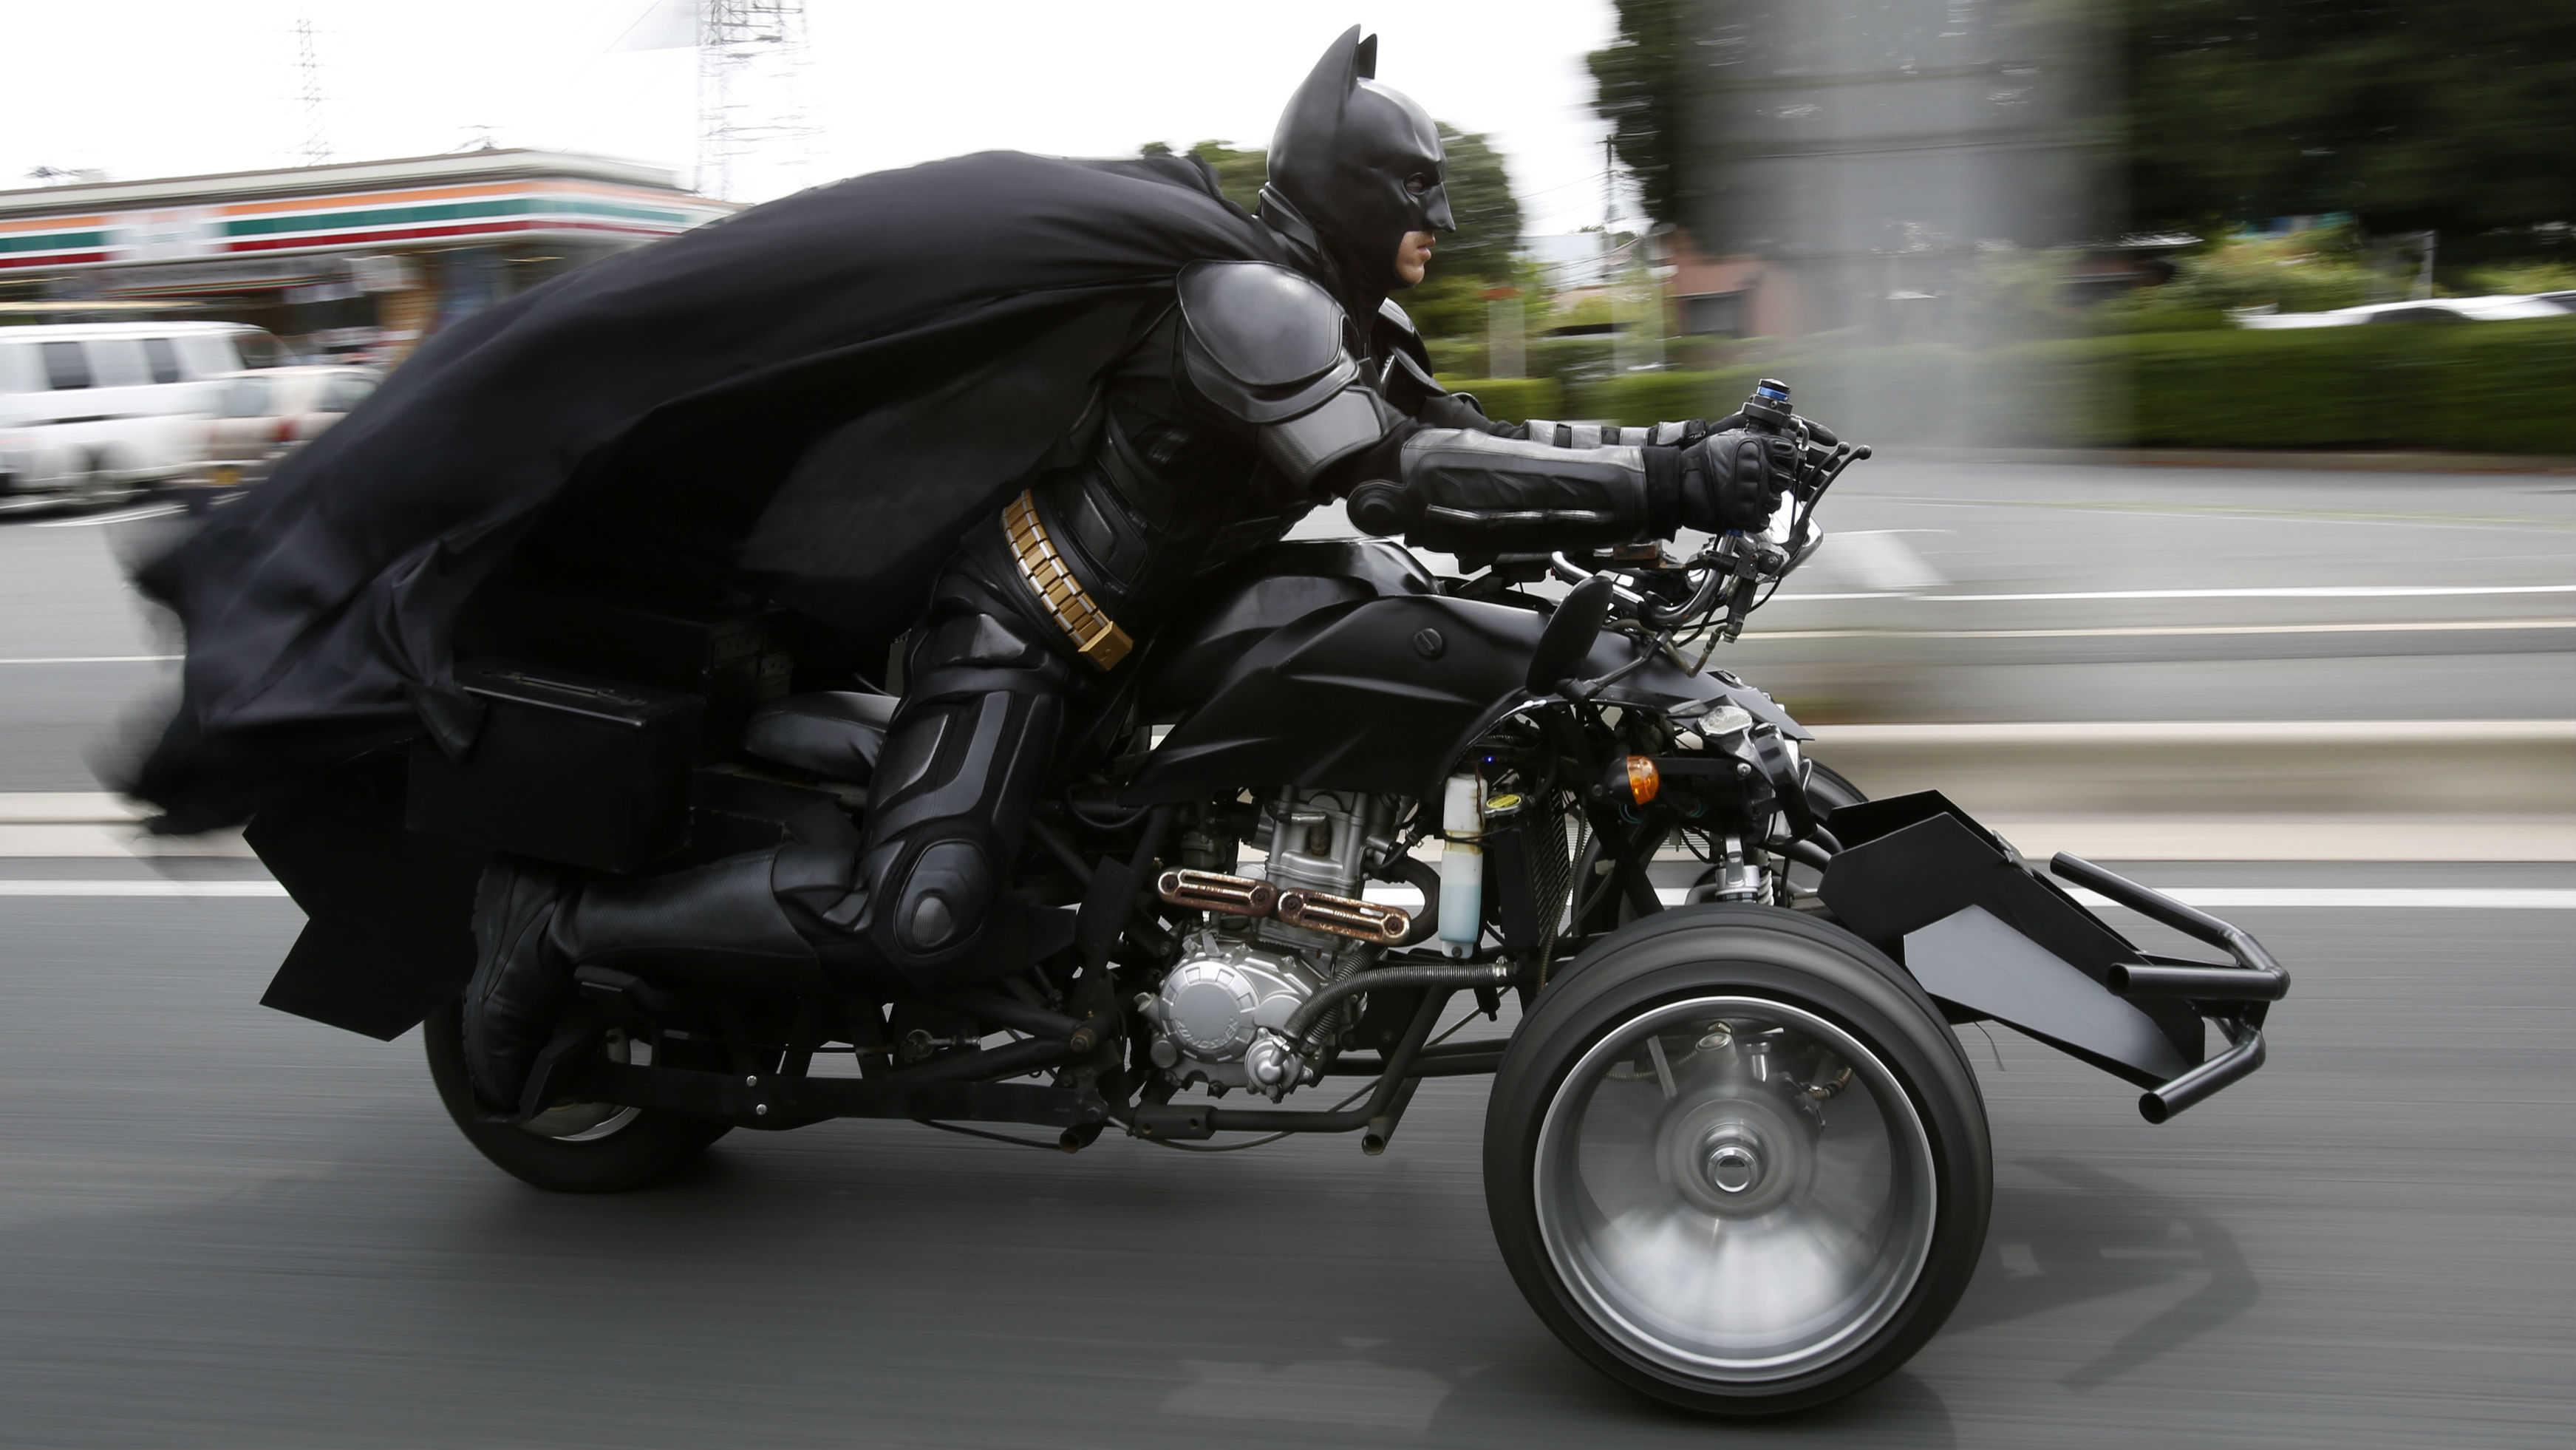 "A 41-year-old man going by the name of Chibatman rides his ""Chibatpod"" on the road in Chiba, east of Tokyo, August 31, 2014. The man, who dresses up as the comic book superhero Batman, came up with his moniker after adding a prefix of the first three letters of the city name, of which he roams on his three-wheeled motorcycle. However, unlike the hero from the Batman series, he rides around in his machine, designed from inspiration of the ""Batpod"" from the movies The Dark Knight and The Dark Knight Rises, delivering smiles instead of fighting crime."